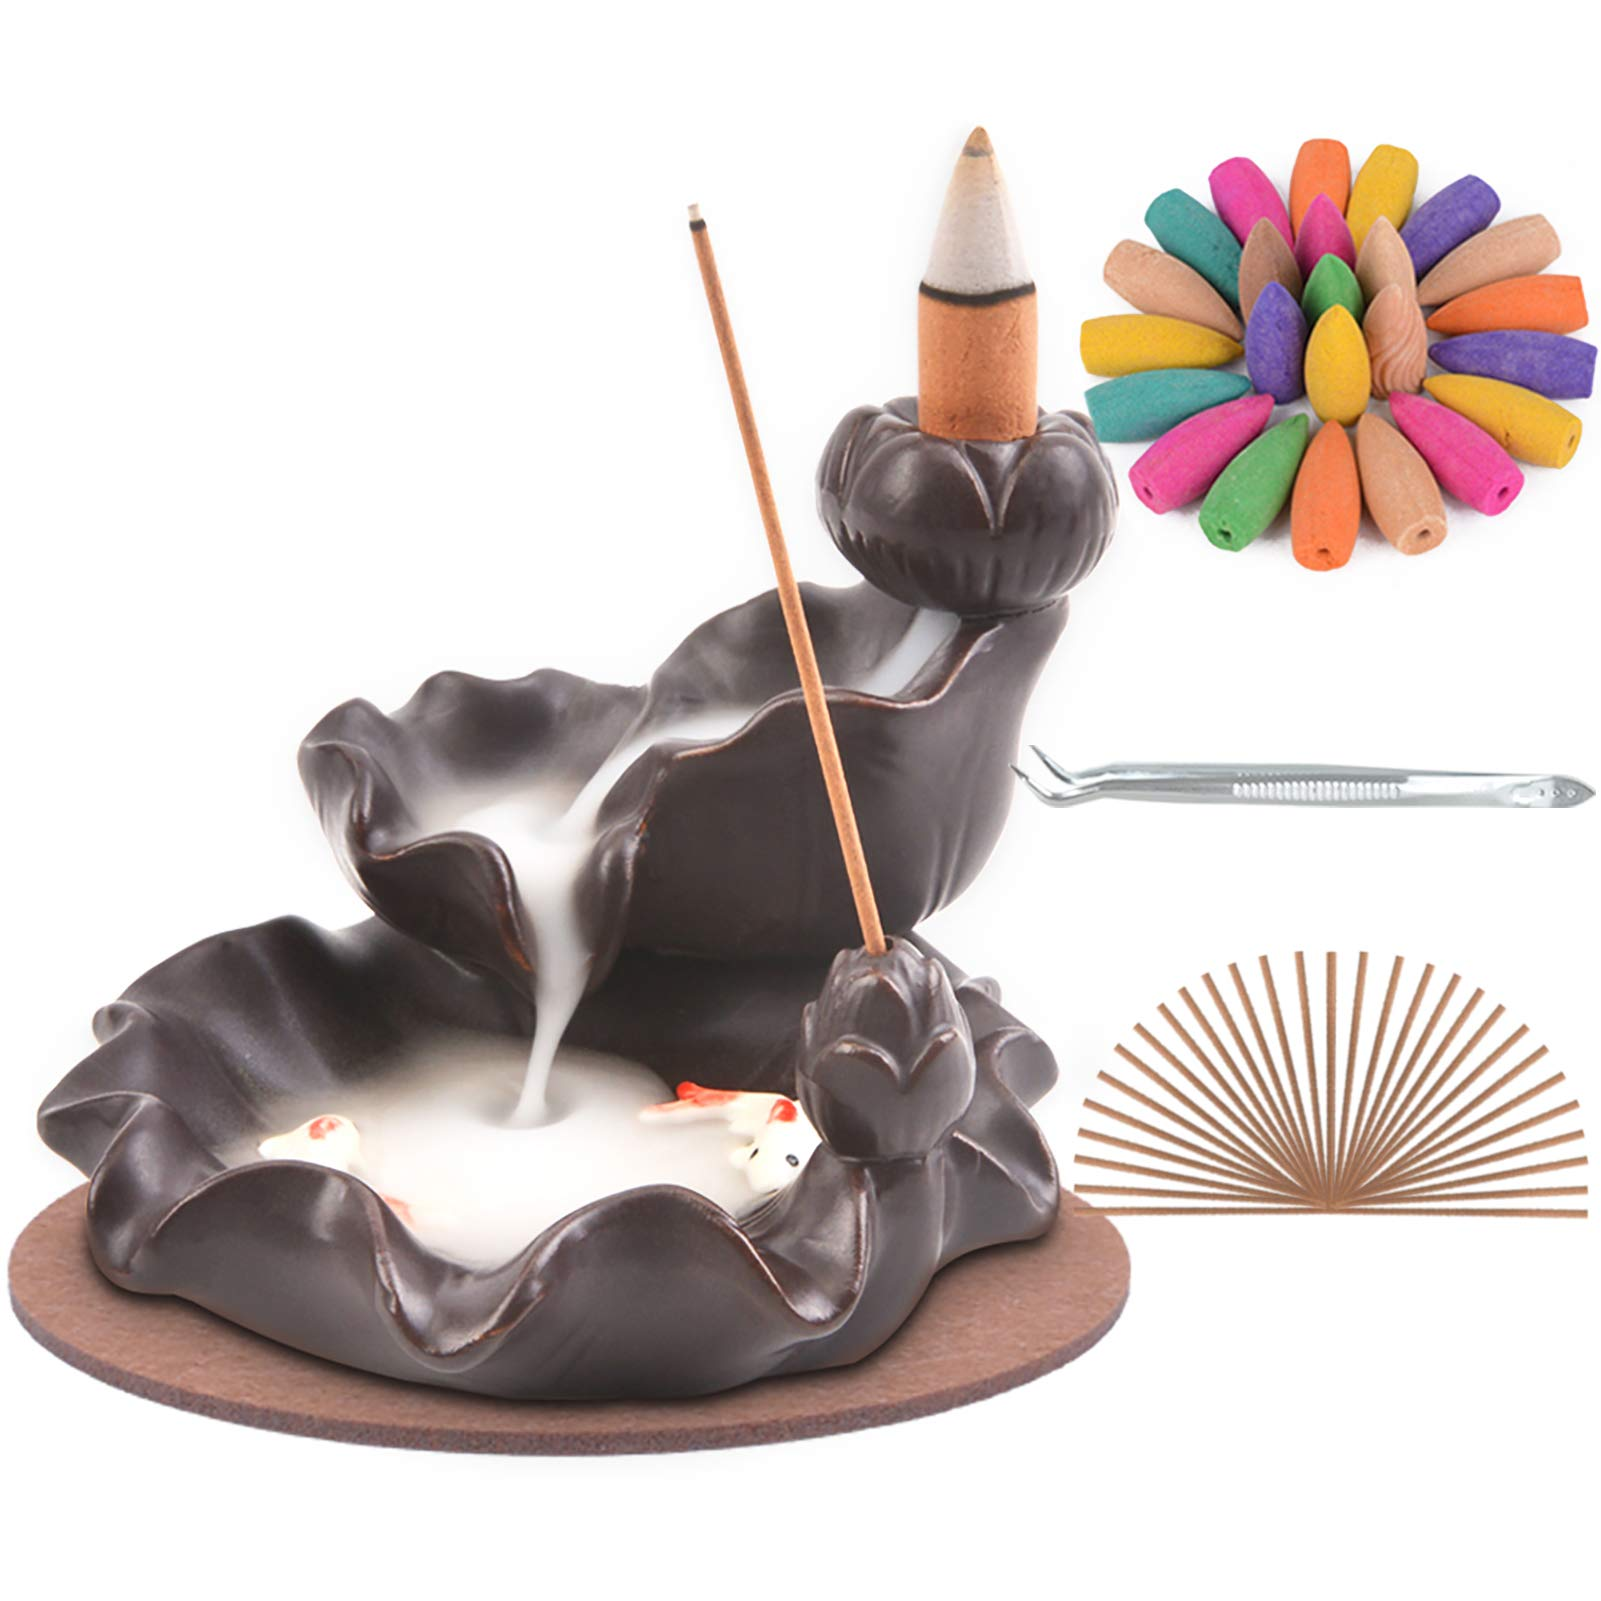 SPACEKEEPER Waterfall-Incense-Burner Ceramic Backflow Incense Holder Handcrafted Censer Inscent Stick Stand with